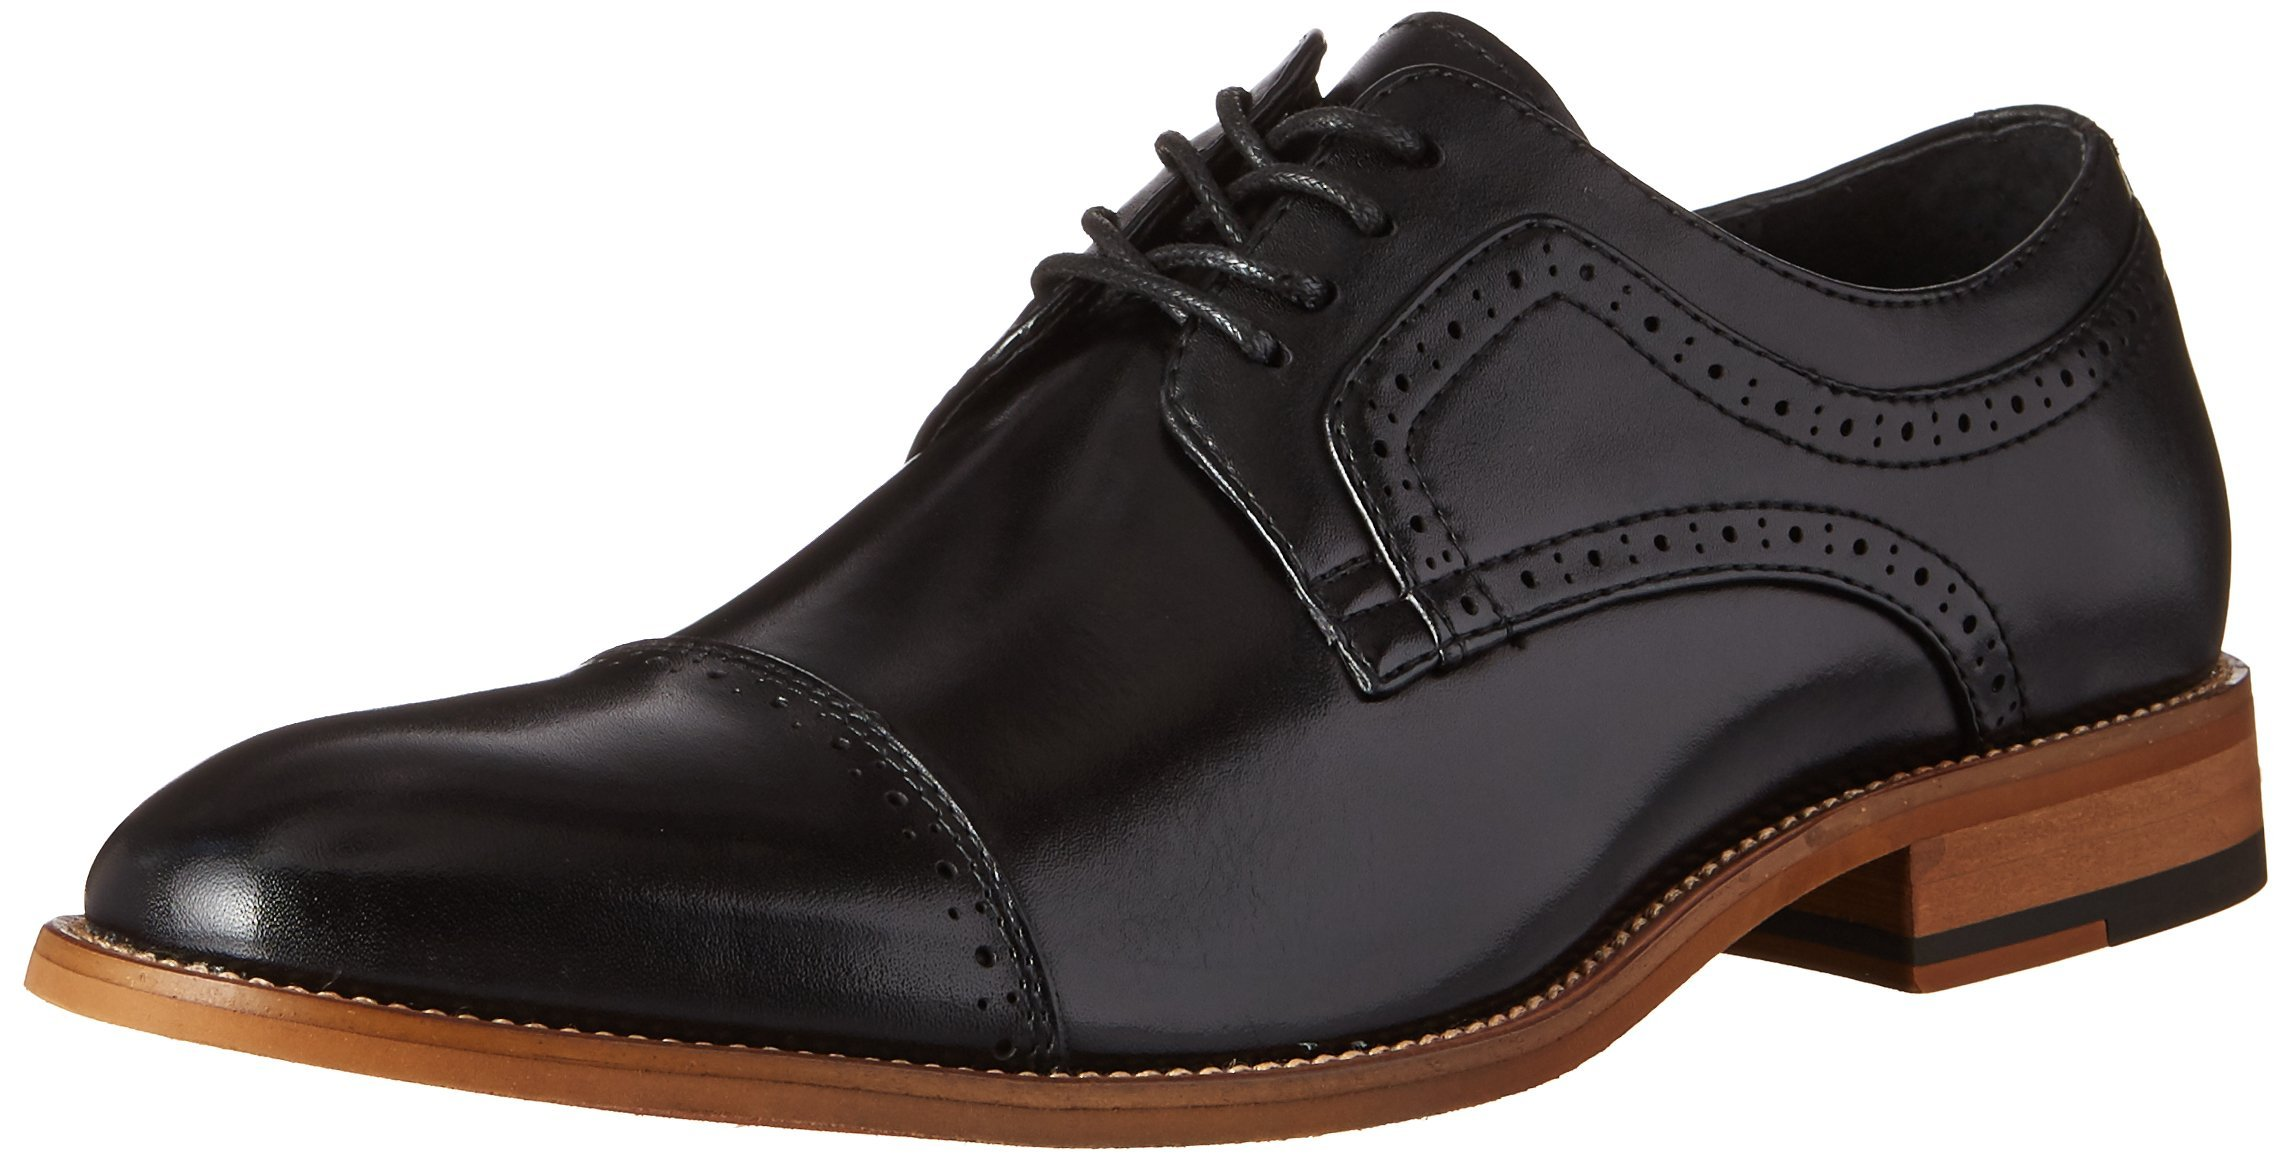 STACY ADAMS Men's Dickinson Cap Toe Oxford, Black, 11.5 M US by STACY ADAMS